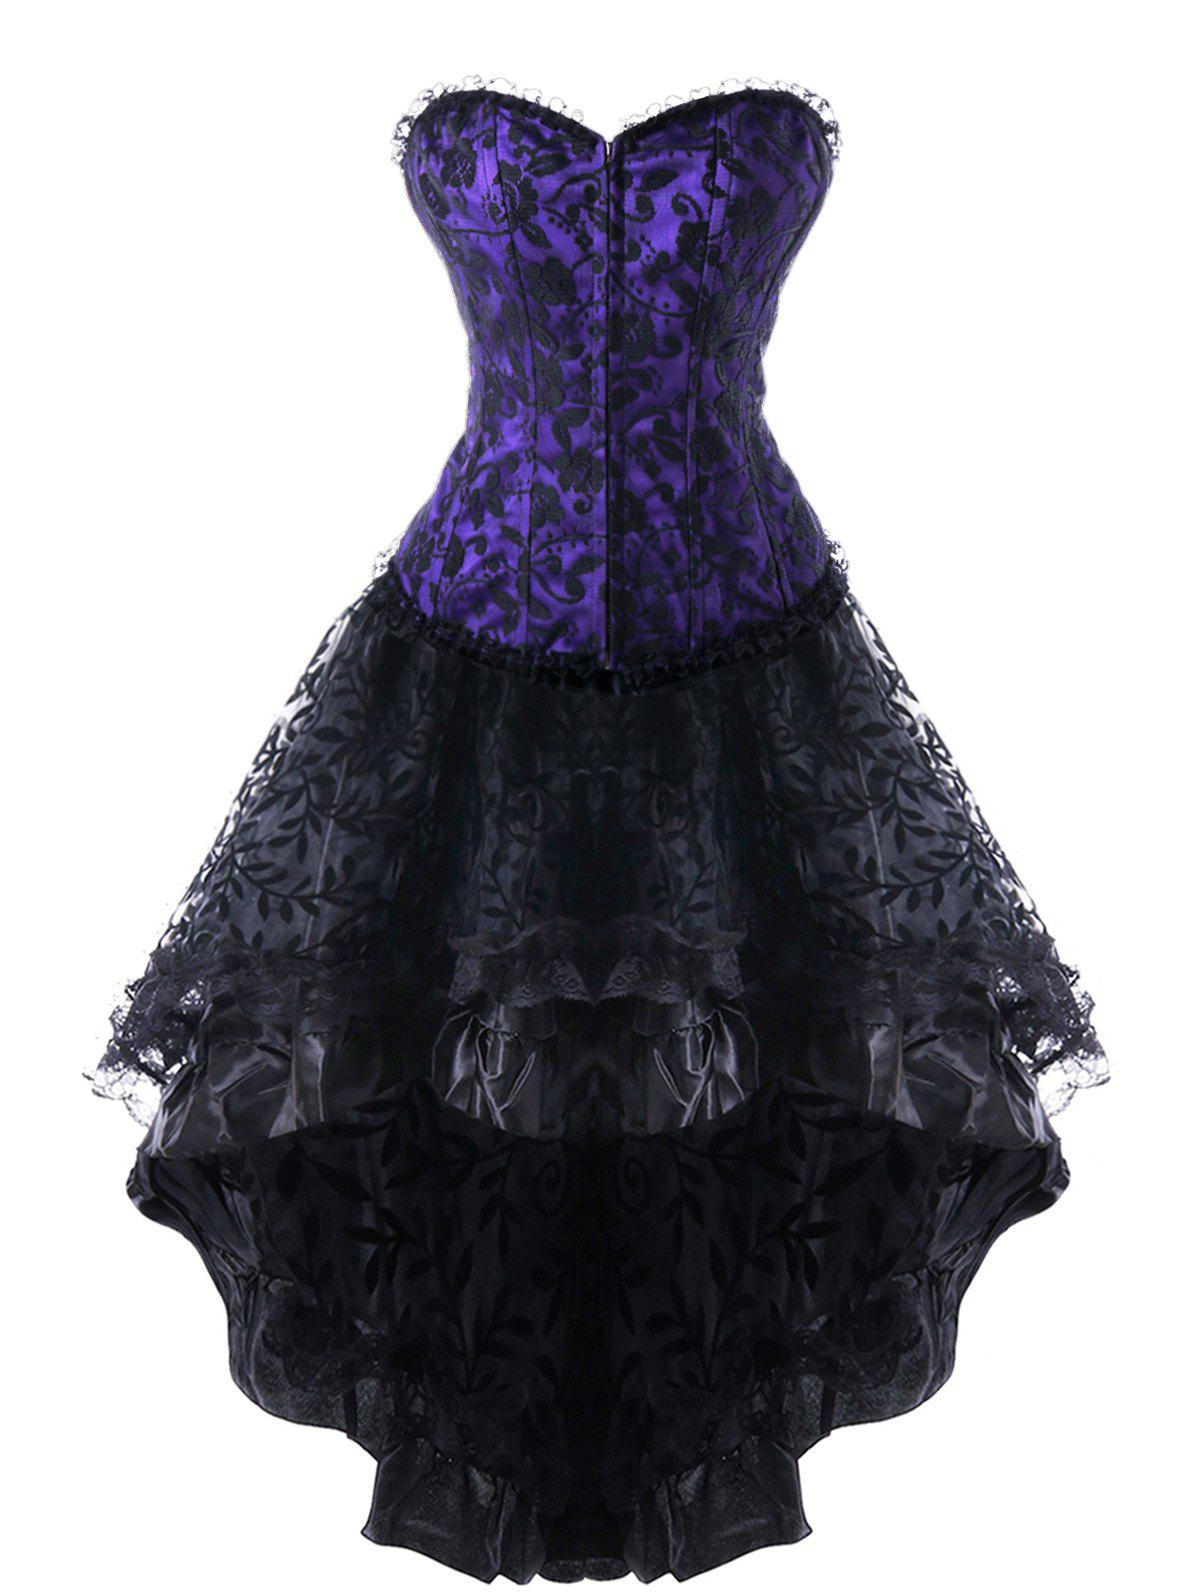 Strapless Lace Up Steel High Low DressWOMEN<br><br>Size: L; Color: PURPLE; Material: Polyester; Pattern Type: Patchwork; Embellishment: Patch Designs,Vintage; Weight: 0.2600kg; Package Contents: 1 x Corset Dress;